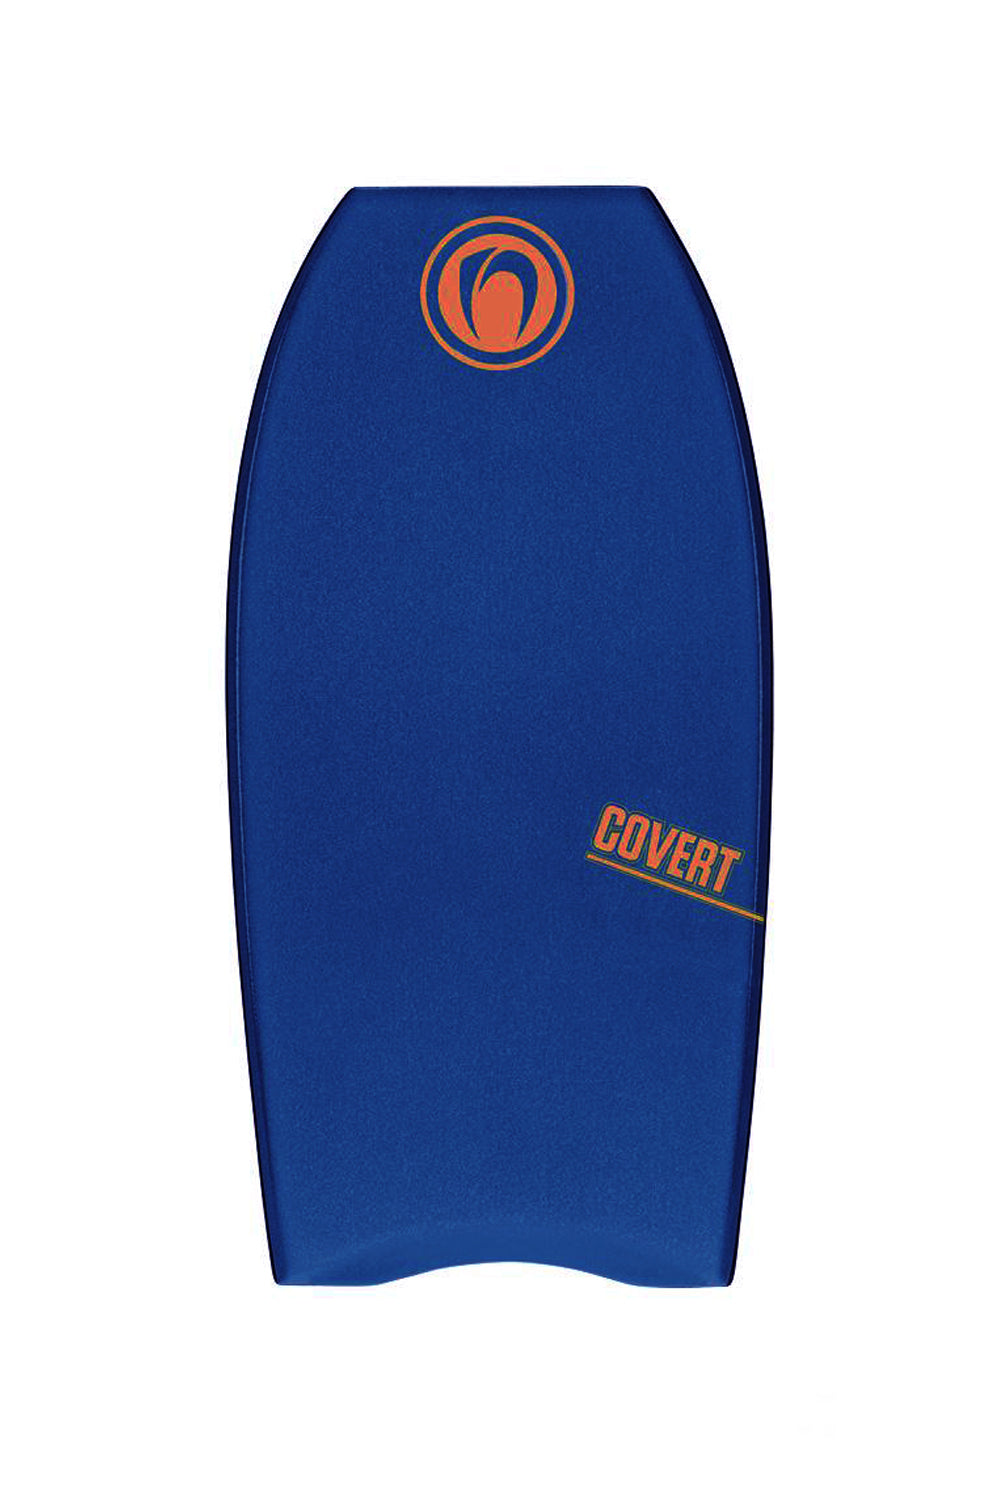 Nomad Covert Bodyboard